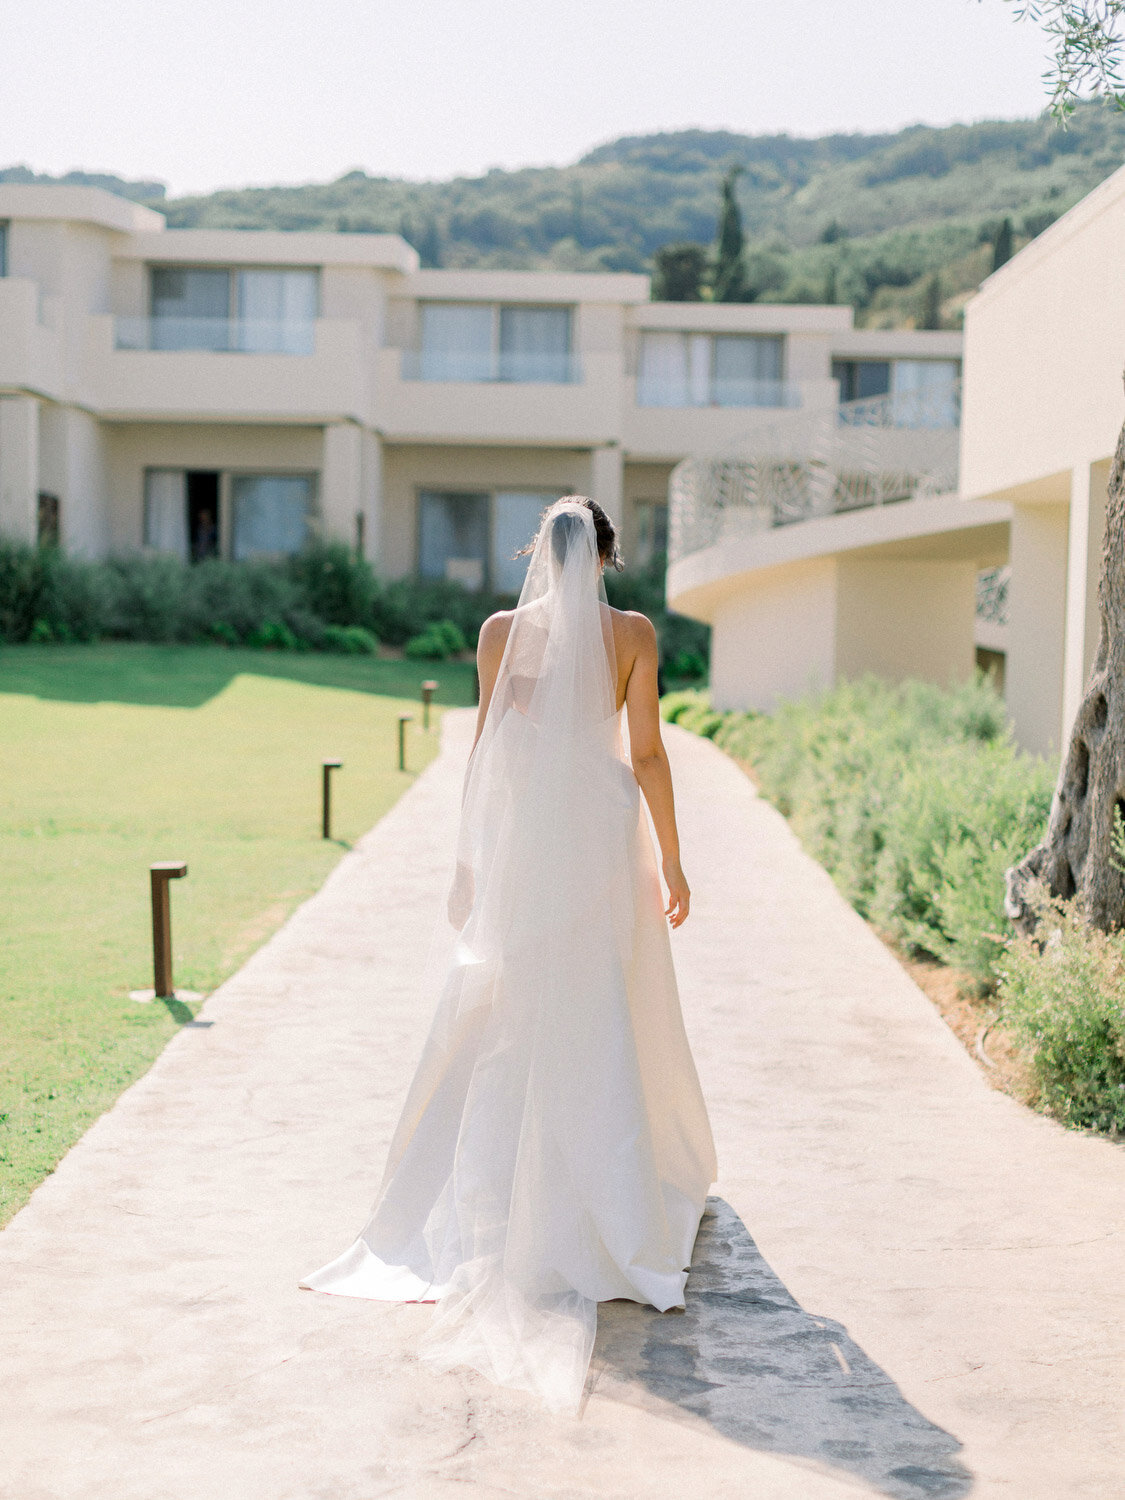 Greece-film-wedding-photography-by-Kostis-Mouselimis_035